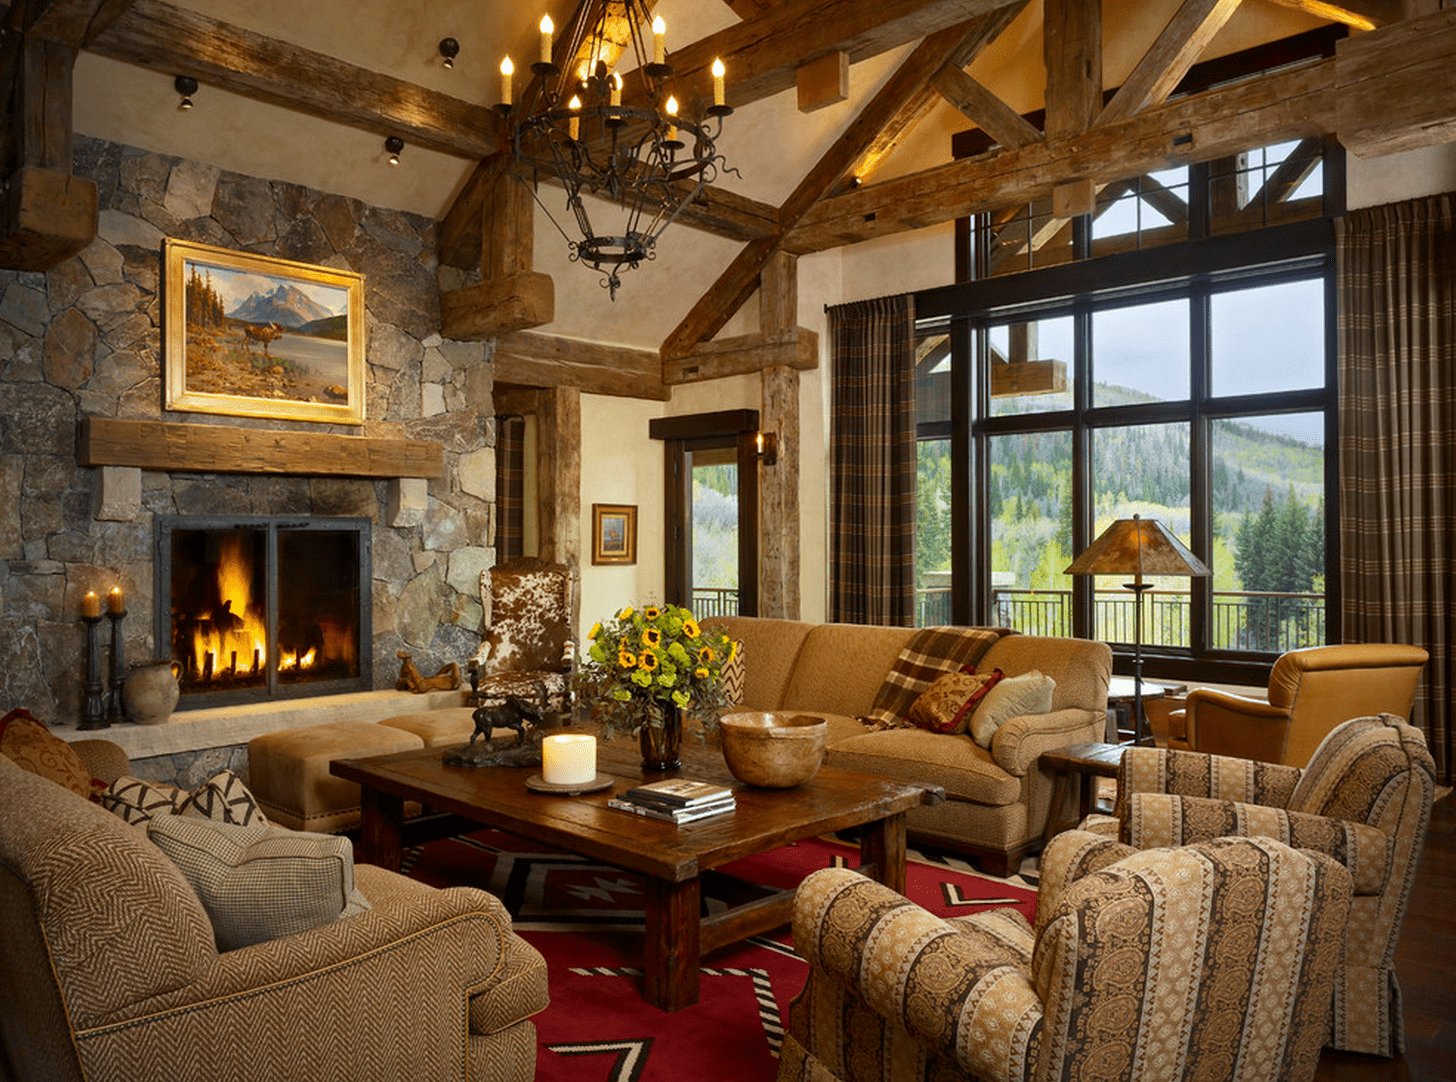 21 cozy living room design ideas - Living Room With Fireplace